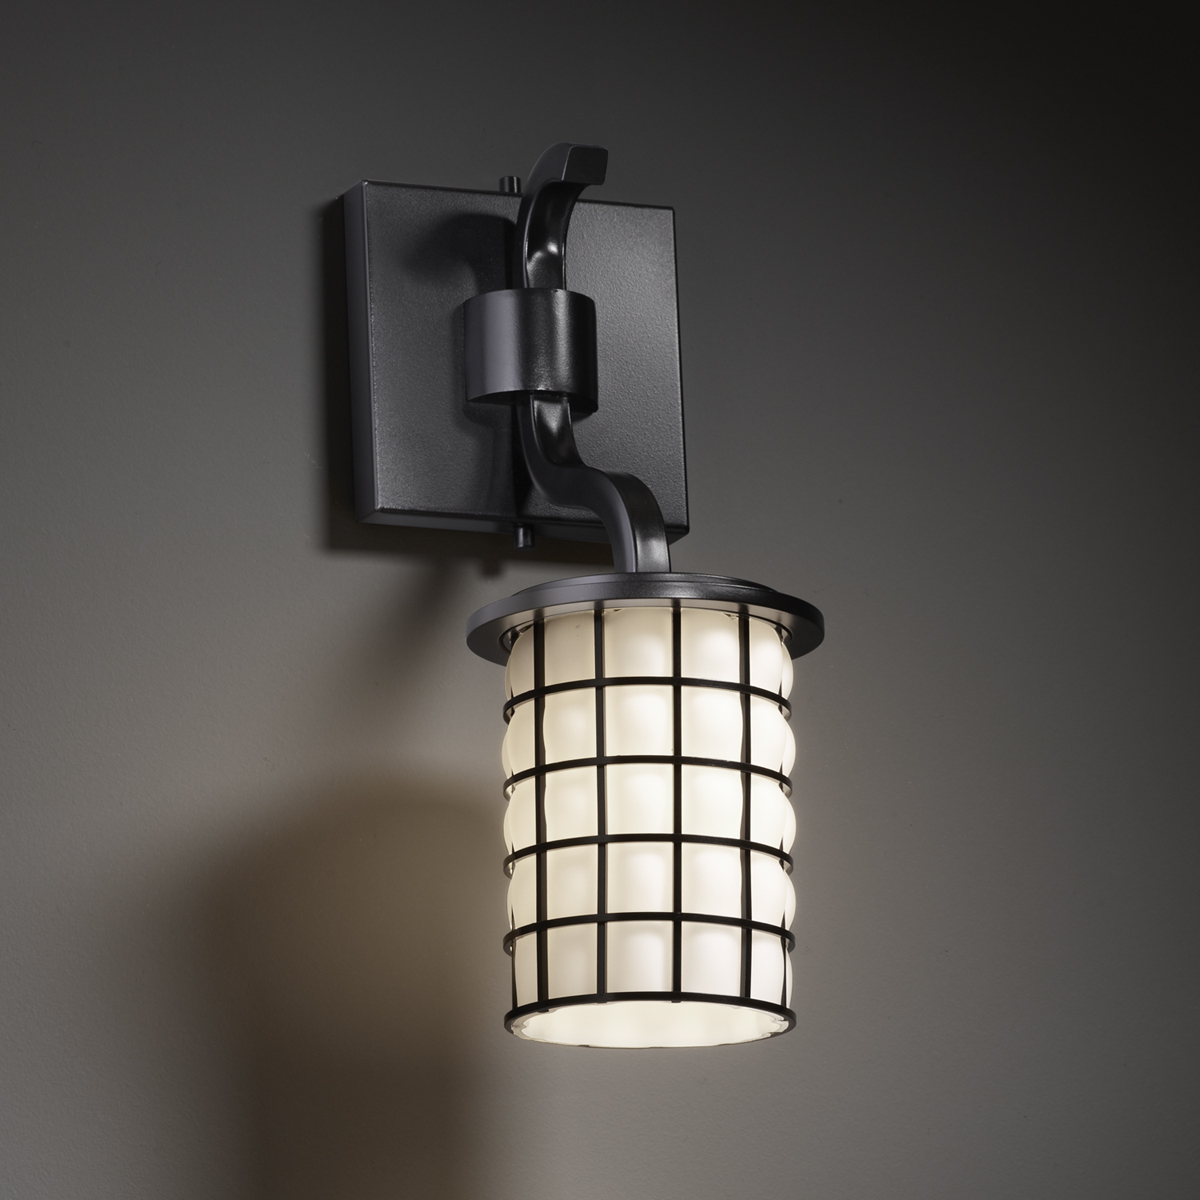 Wall Sconce With Wire : Justice Design (WGL-8781) Sonoma 1-Light Wall Sconce (Short) from the Wire Glass Collection